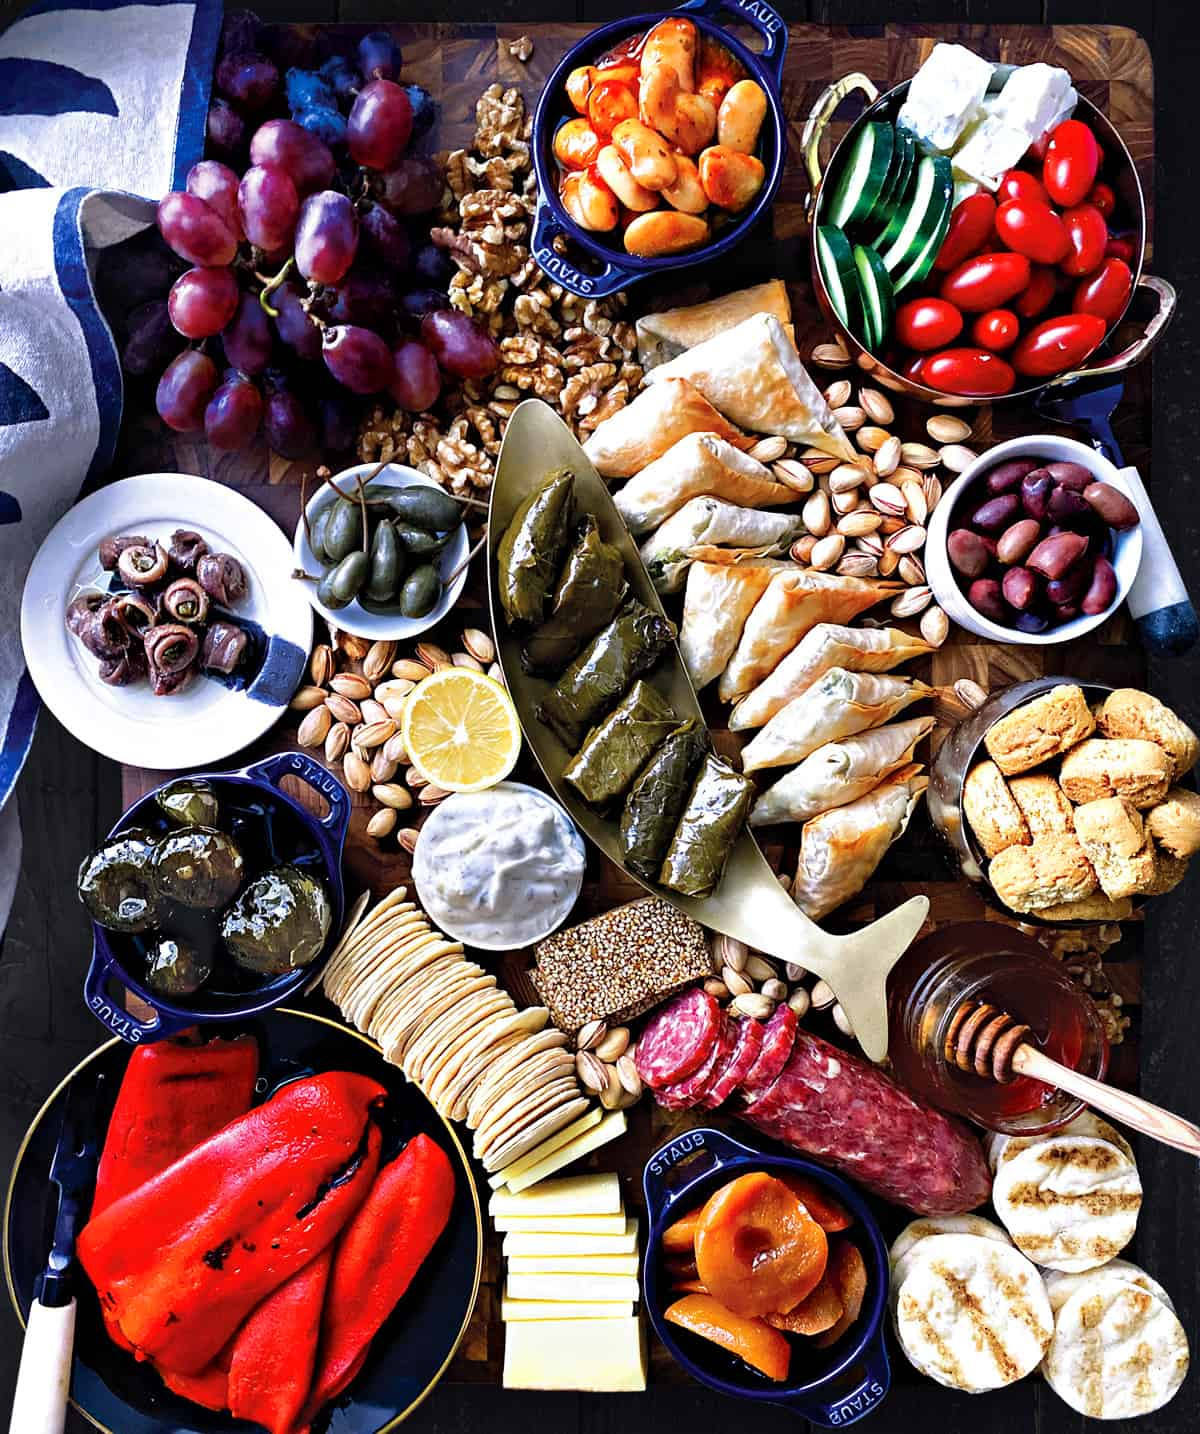 A cutting board with grapes, pita bread, a bowl with anchovies, confiners with fig jam and artichoke spread, a fish shaped bowl with biscotti. Scattered walnuts and pistachios, sliced figs and mini triangle cheese pies and cubes of feta cheese. Bowl with greek salad, a plate with red peppers and a salami, sliced.